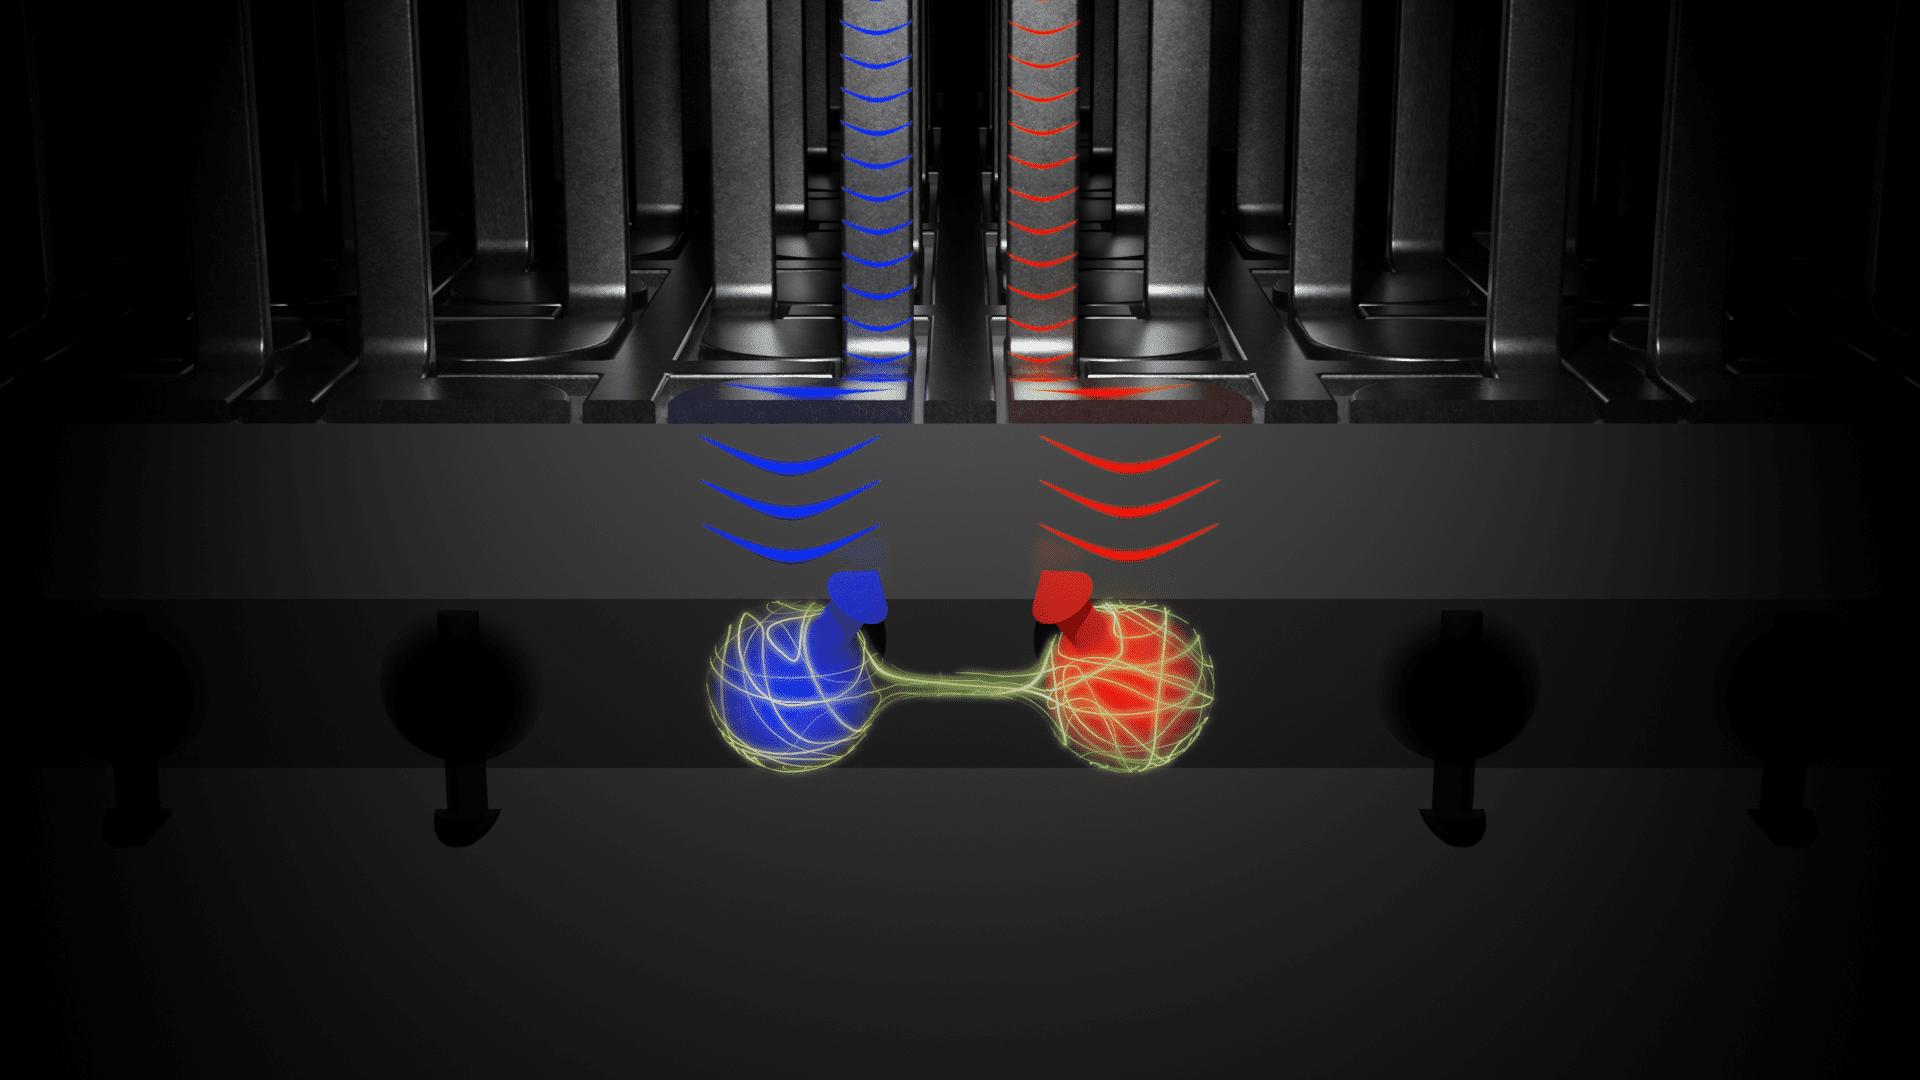 Illustration of 2 quantum bits made out of germanium transistors for a quantum computer.